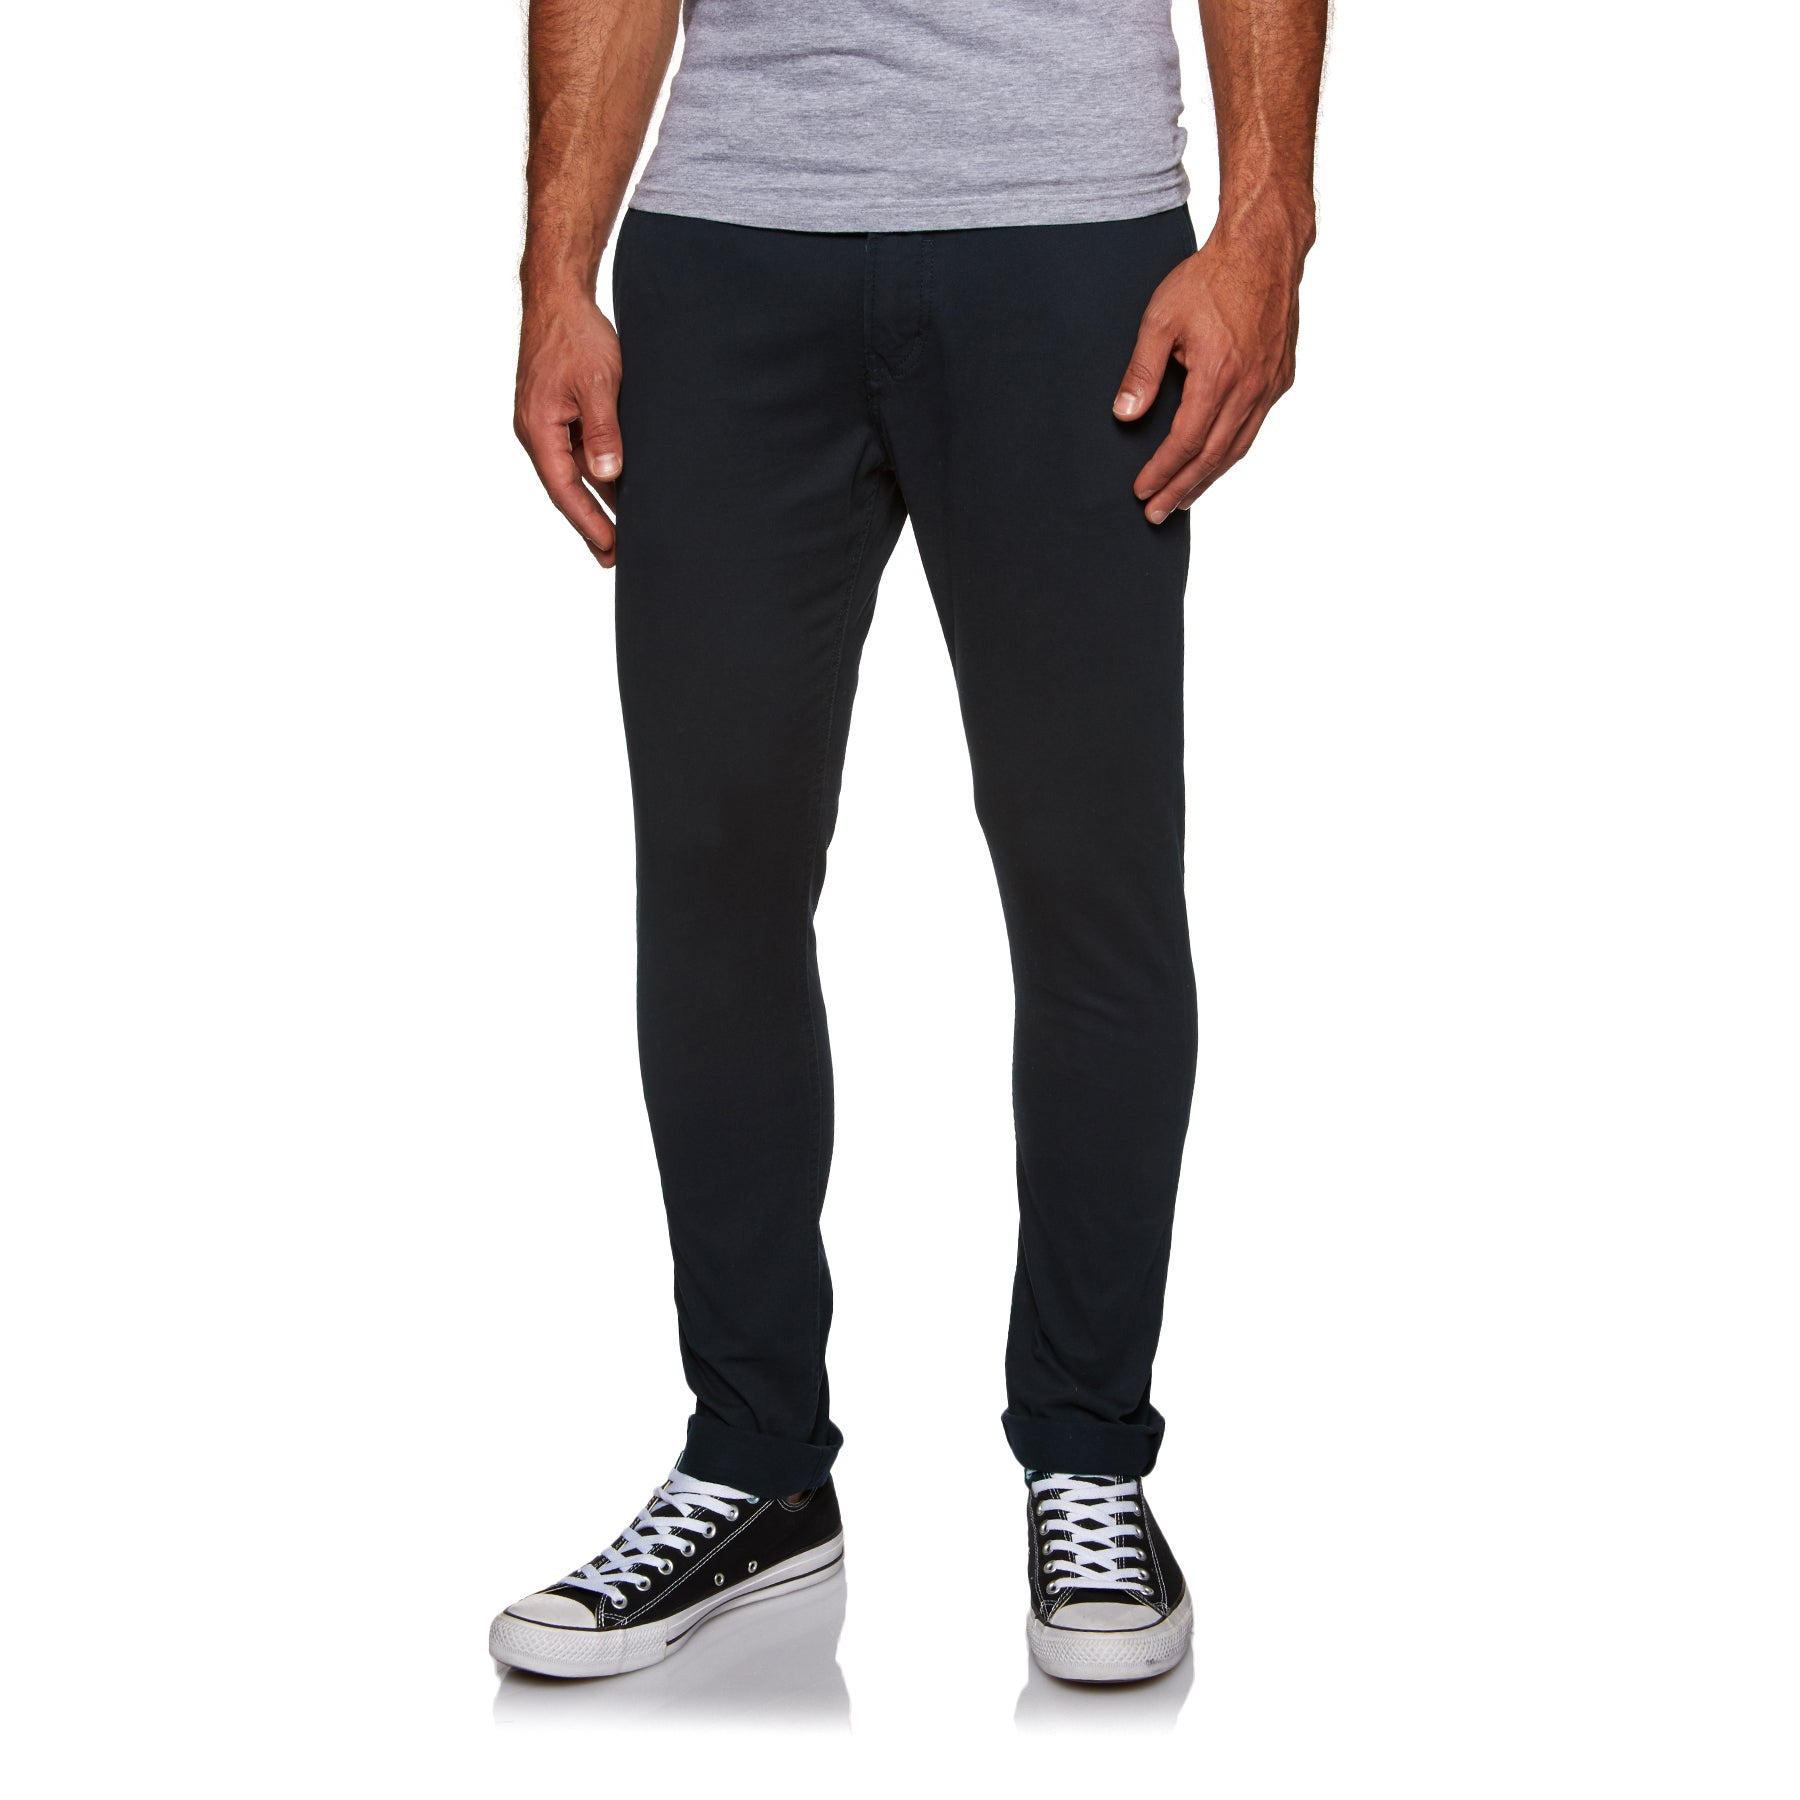 Quiksilver Krandy Slim Chino Pant - Black